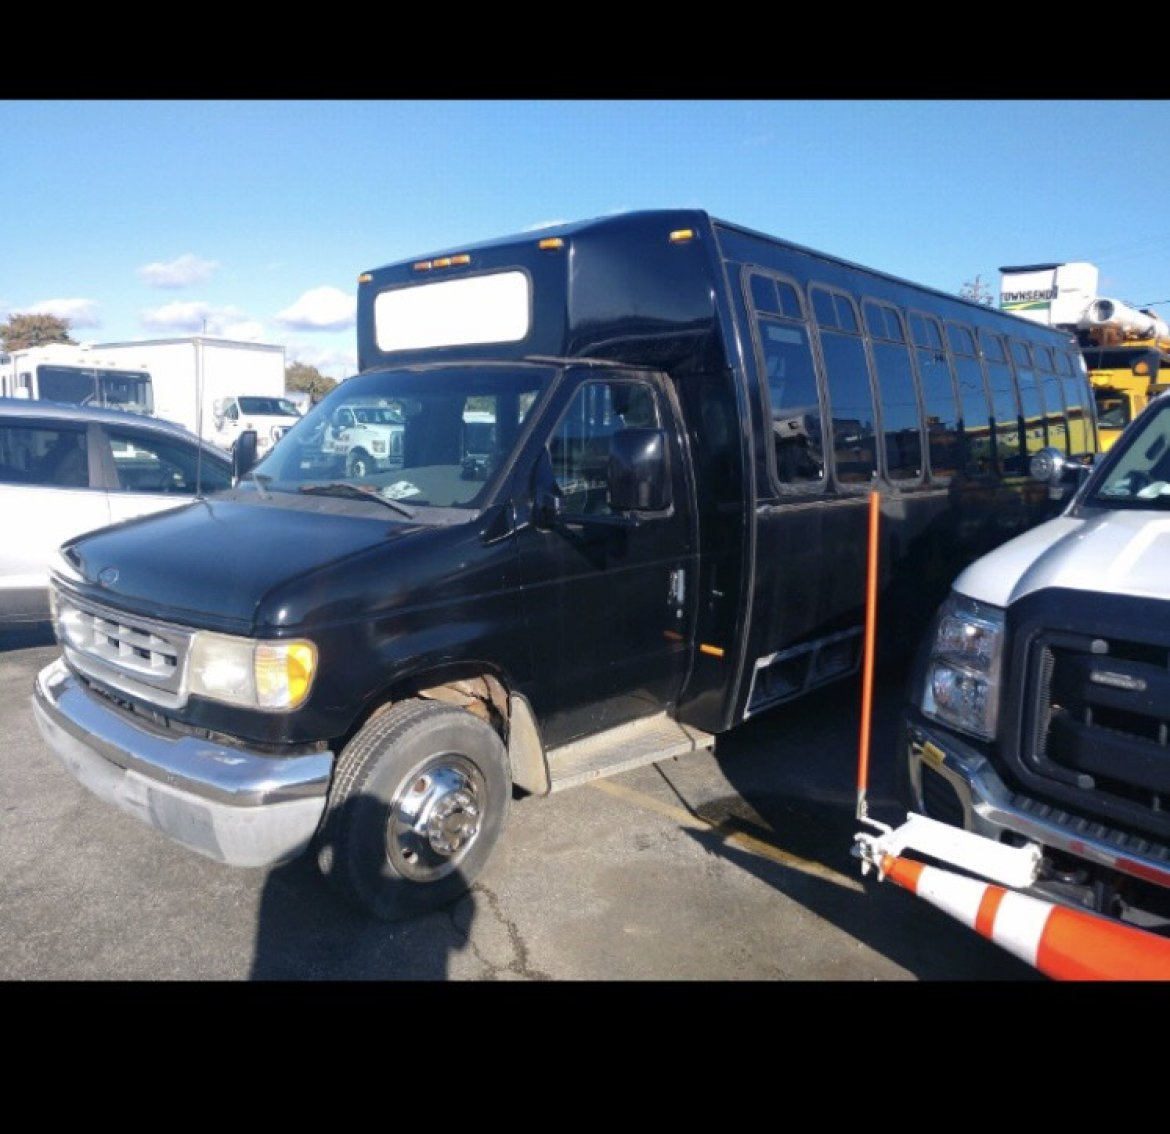 Limo Bus for sale: 2001 Ford E 450 186""